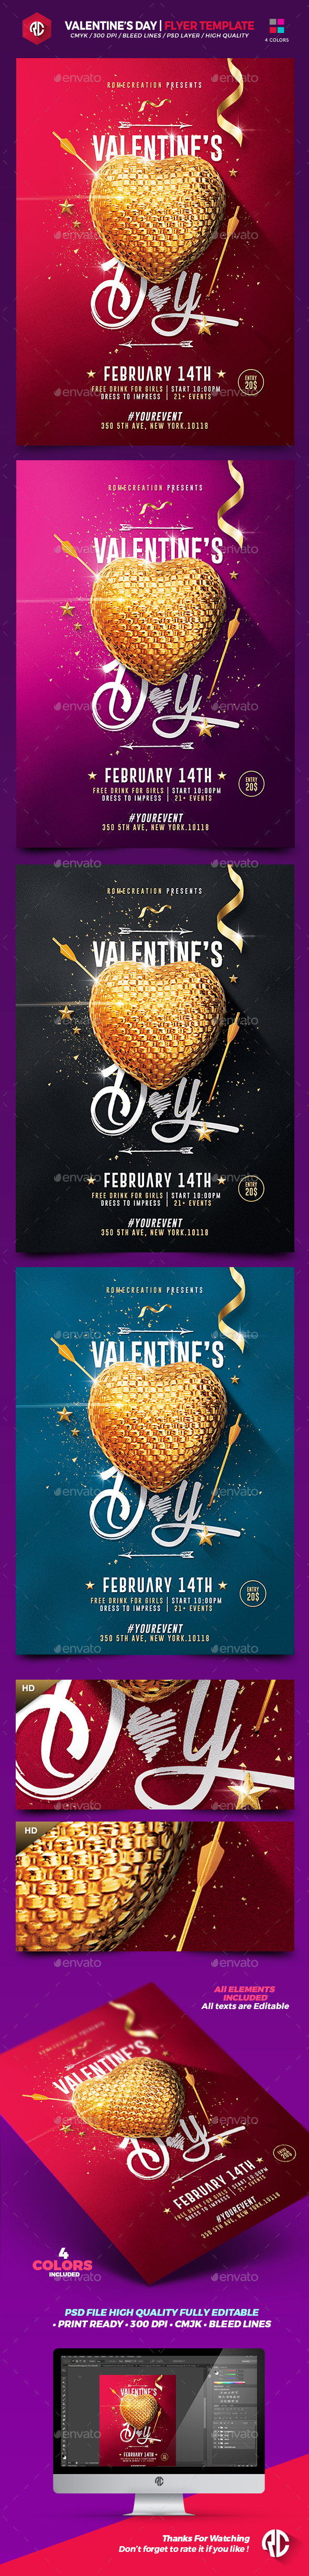 Valentine's Day | Flyer Template - Flyers Print Templates